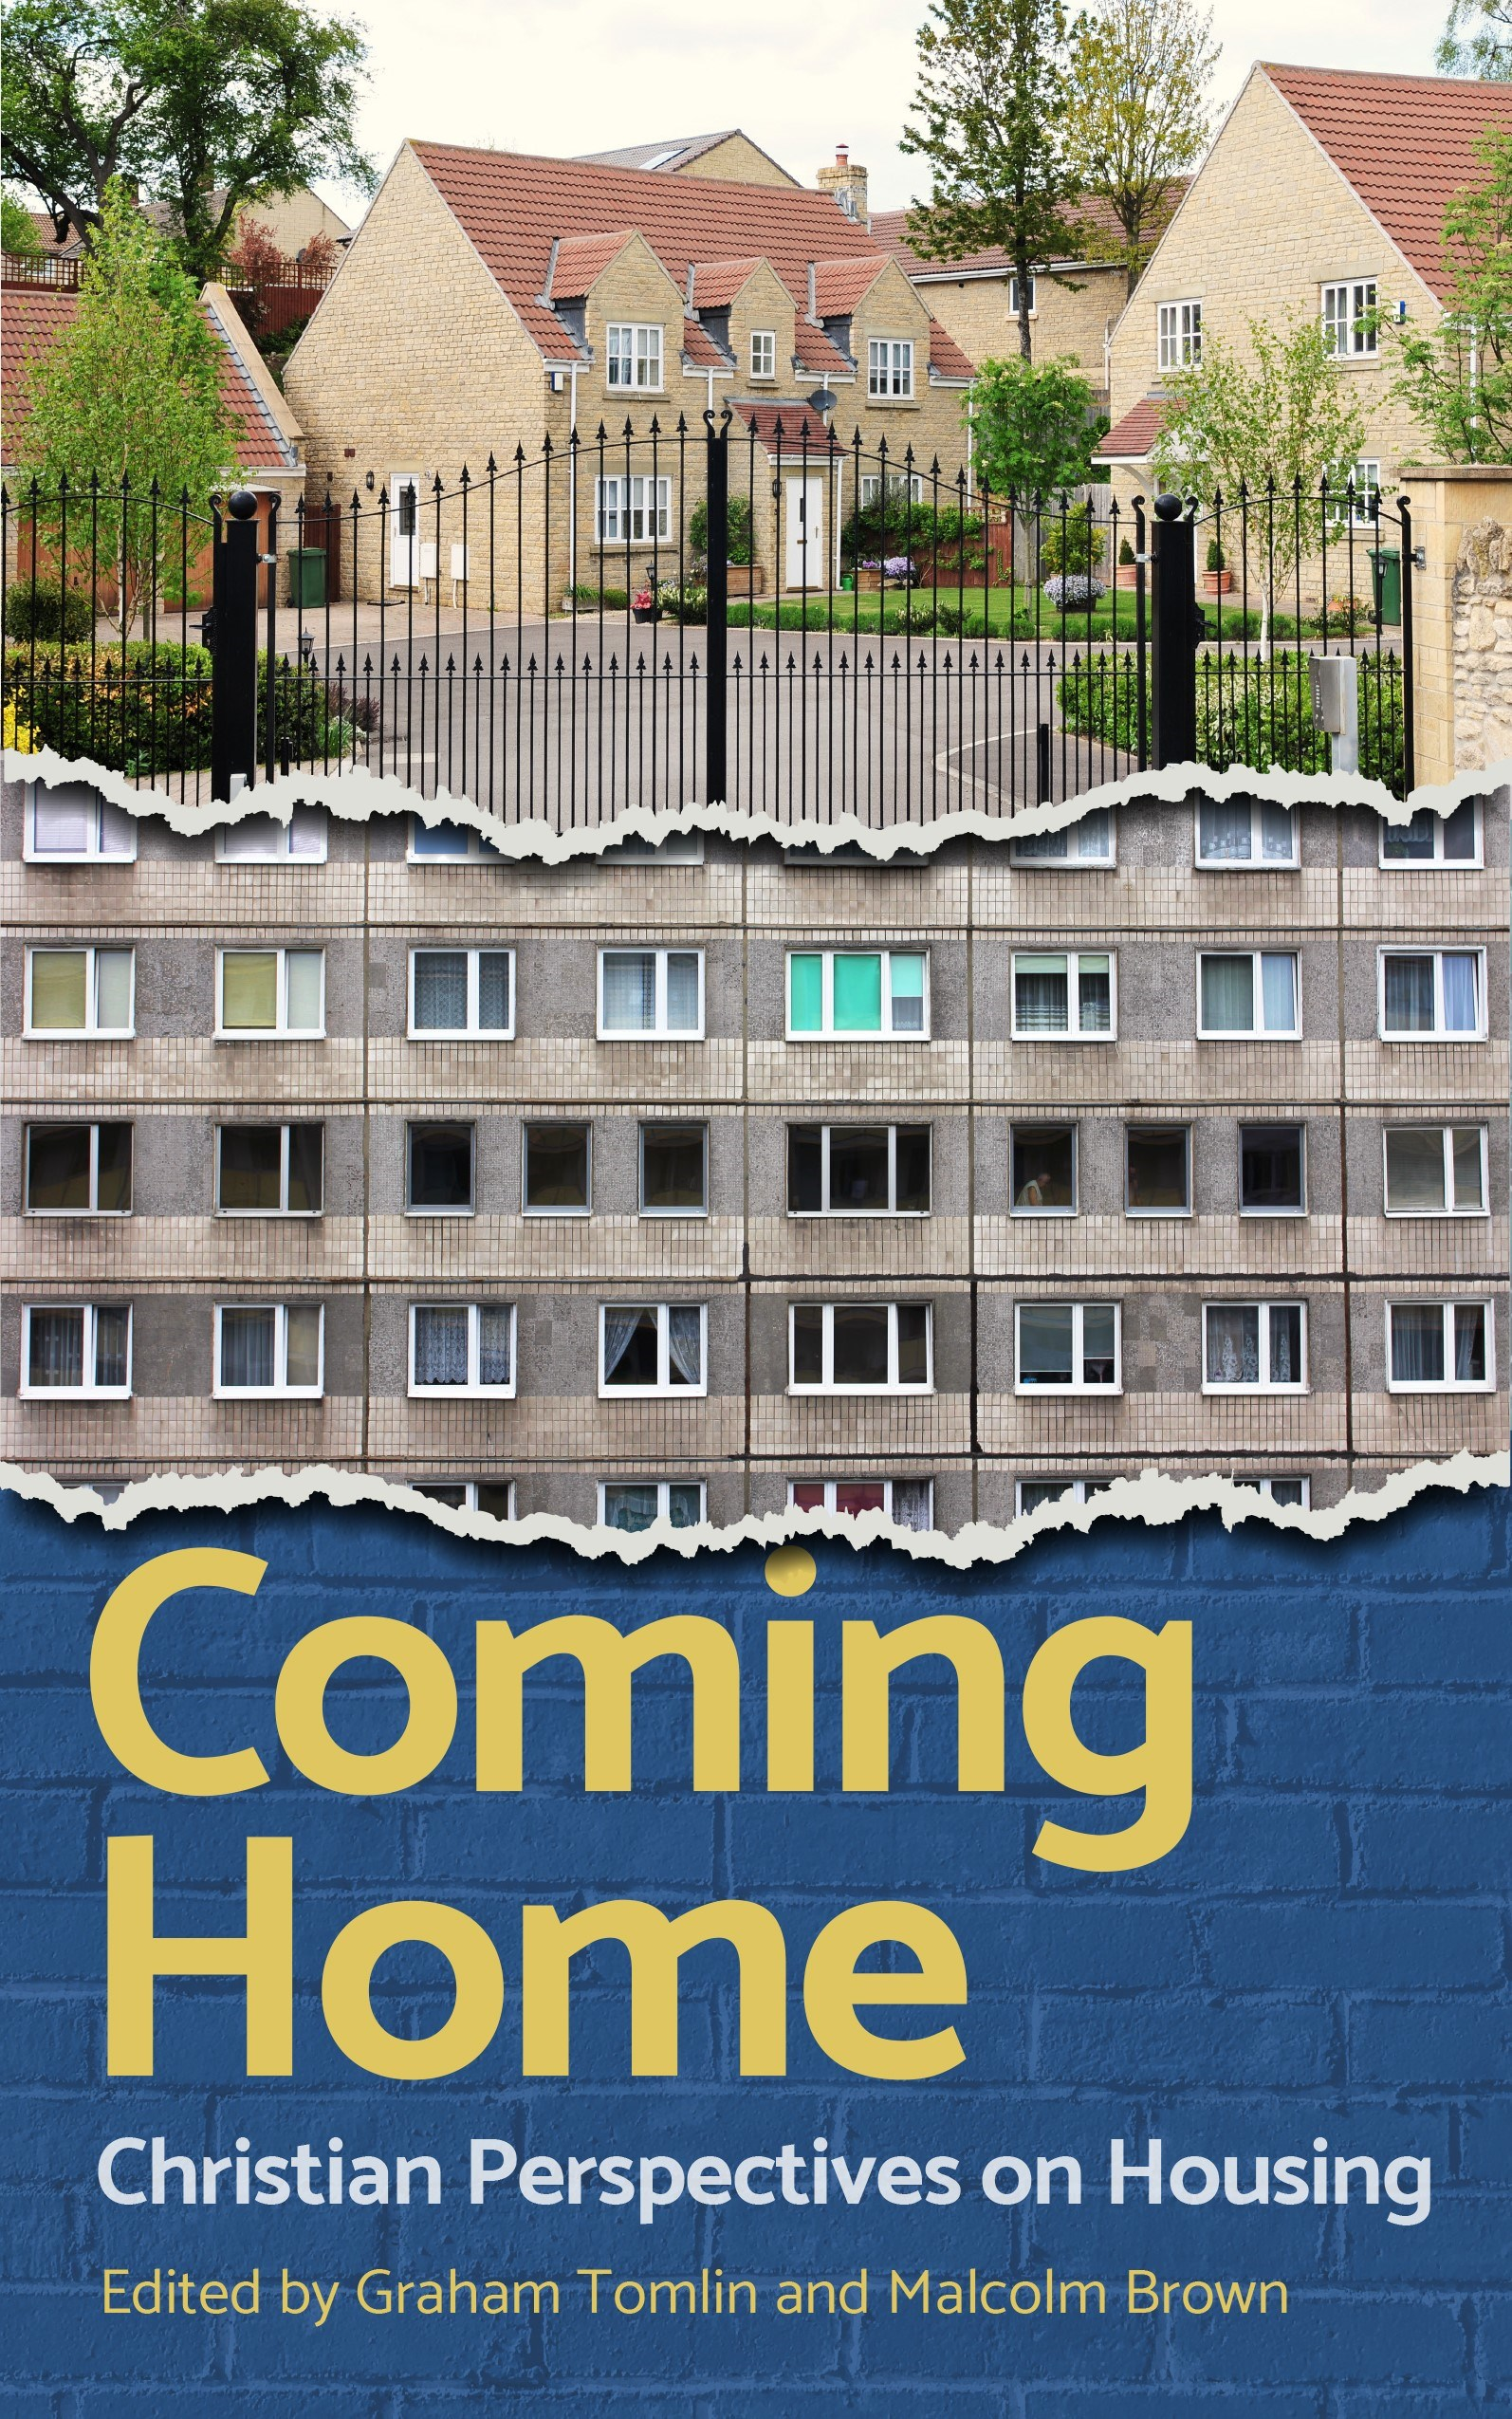 Coming home; Christian perspectives on housing